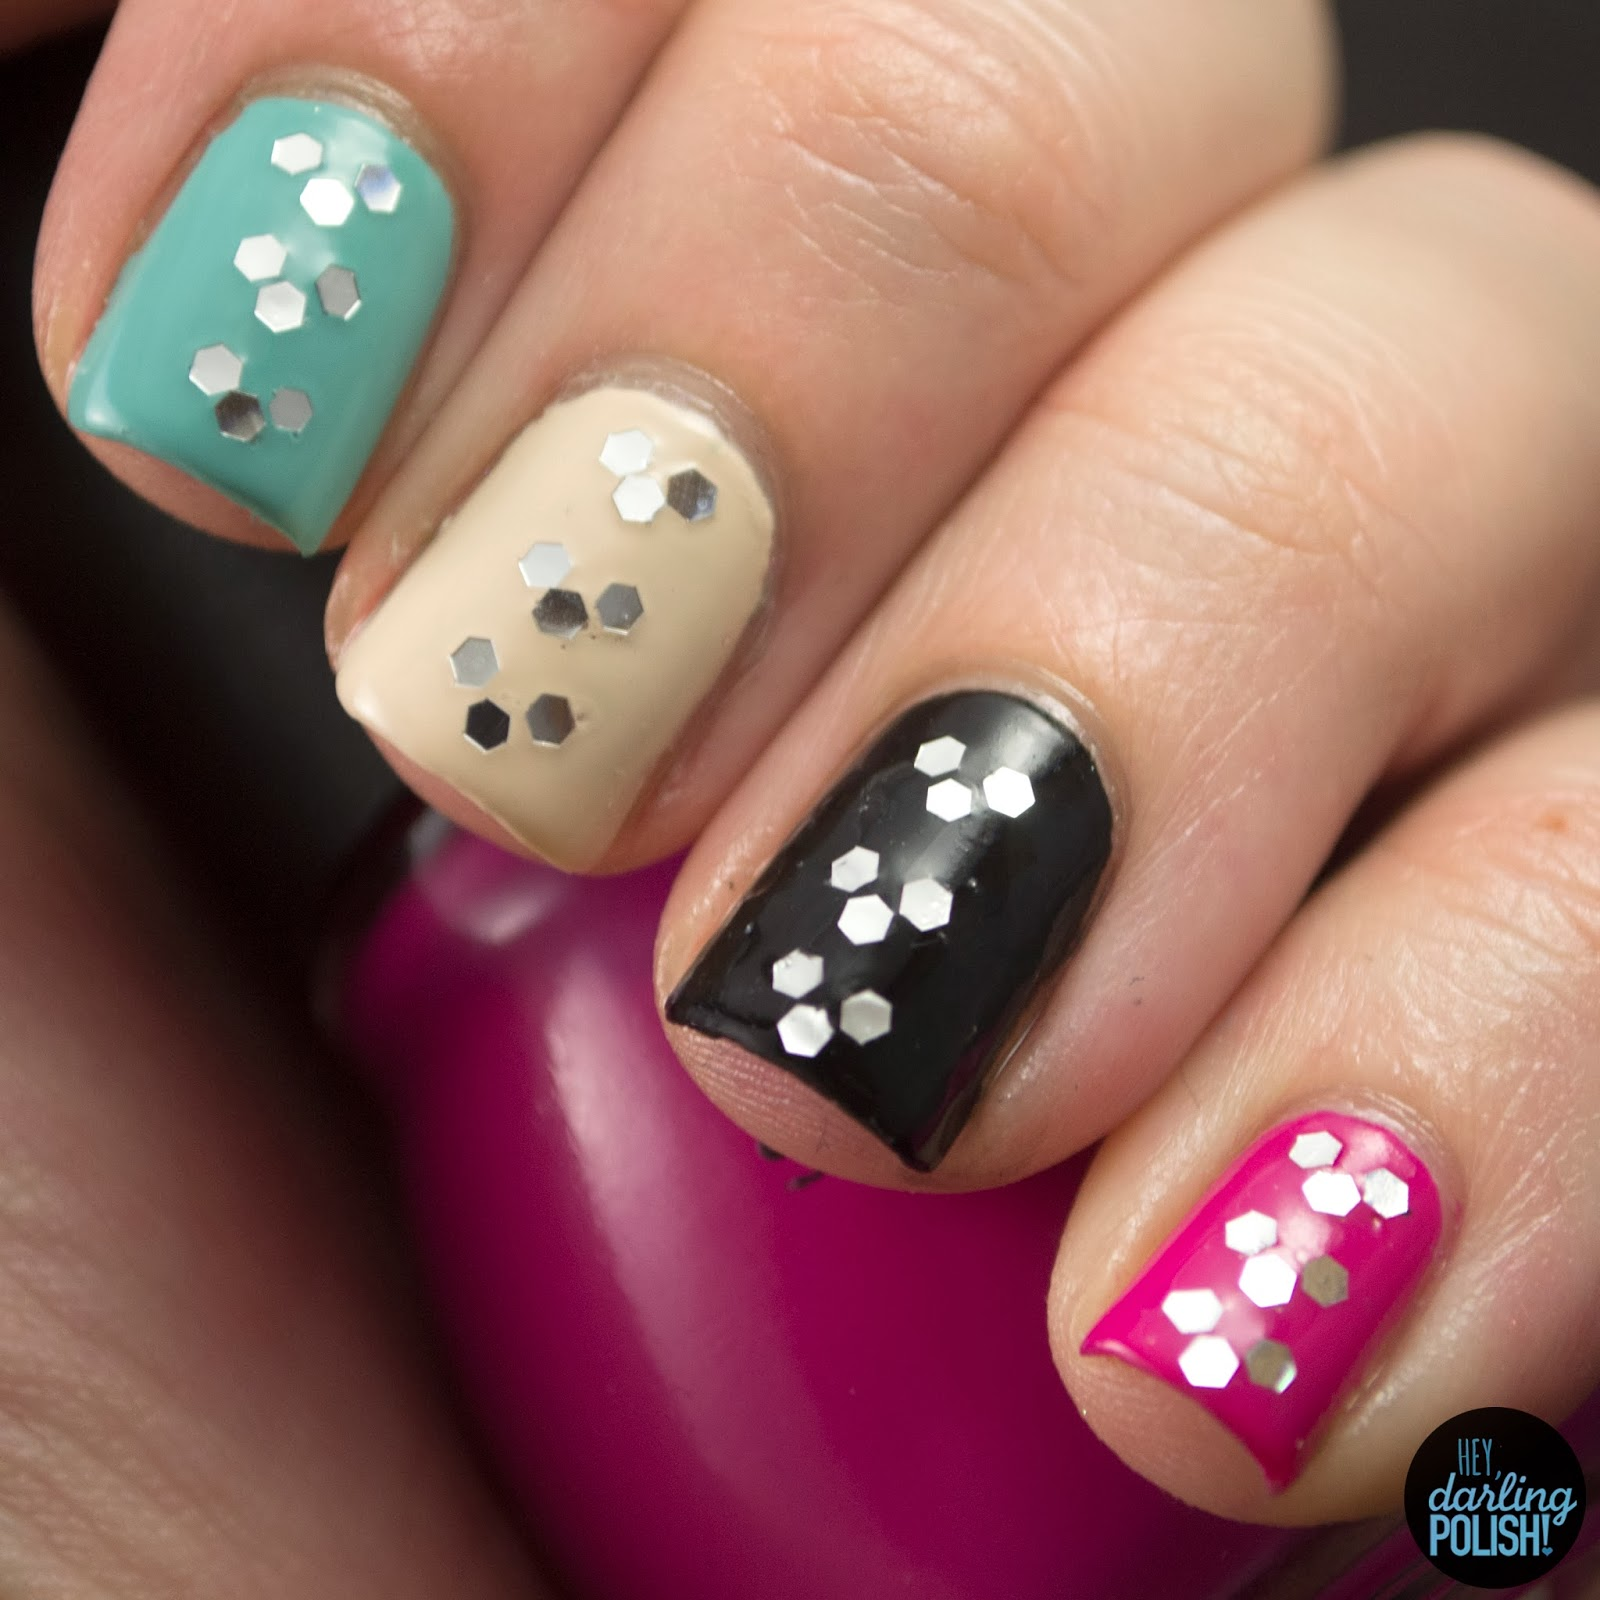 nails, nail art, nail polish, polish, glequins, hey darling polish, theme buffet